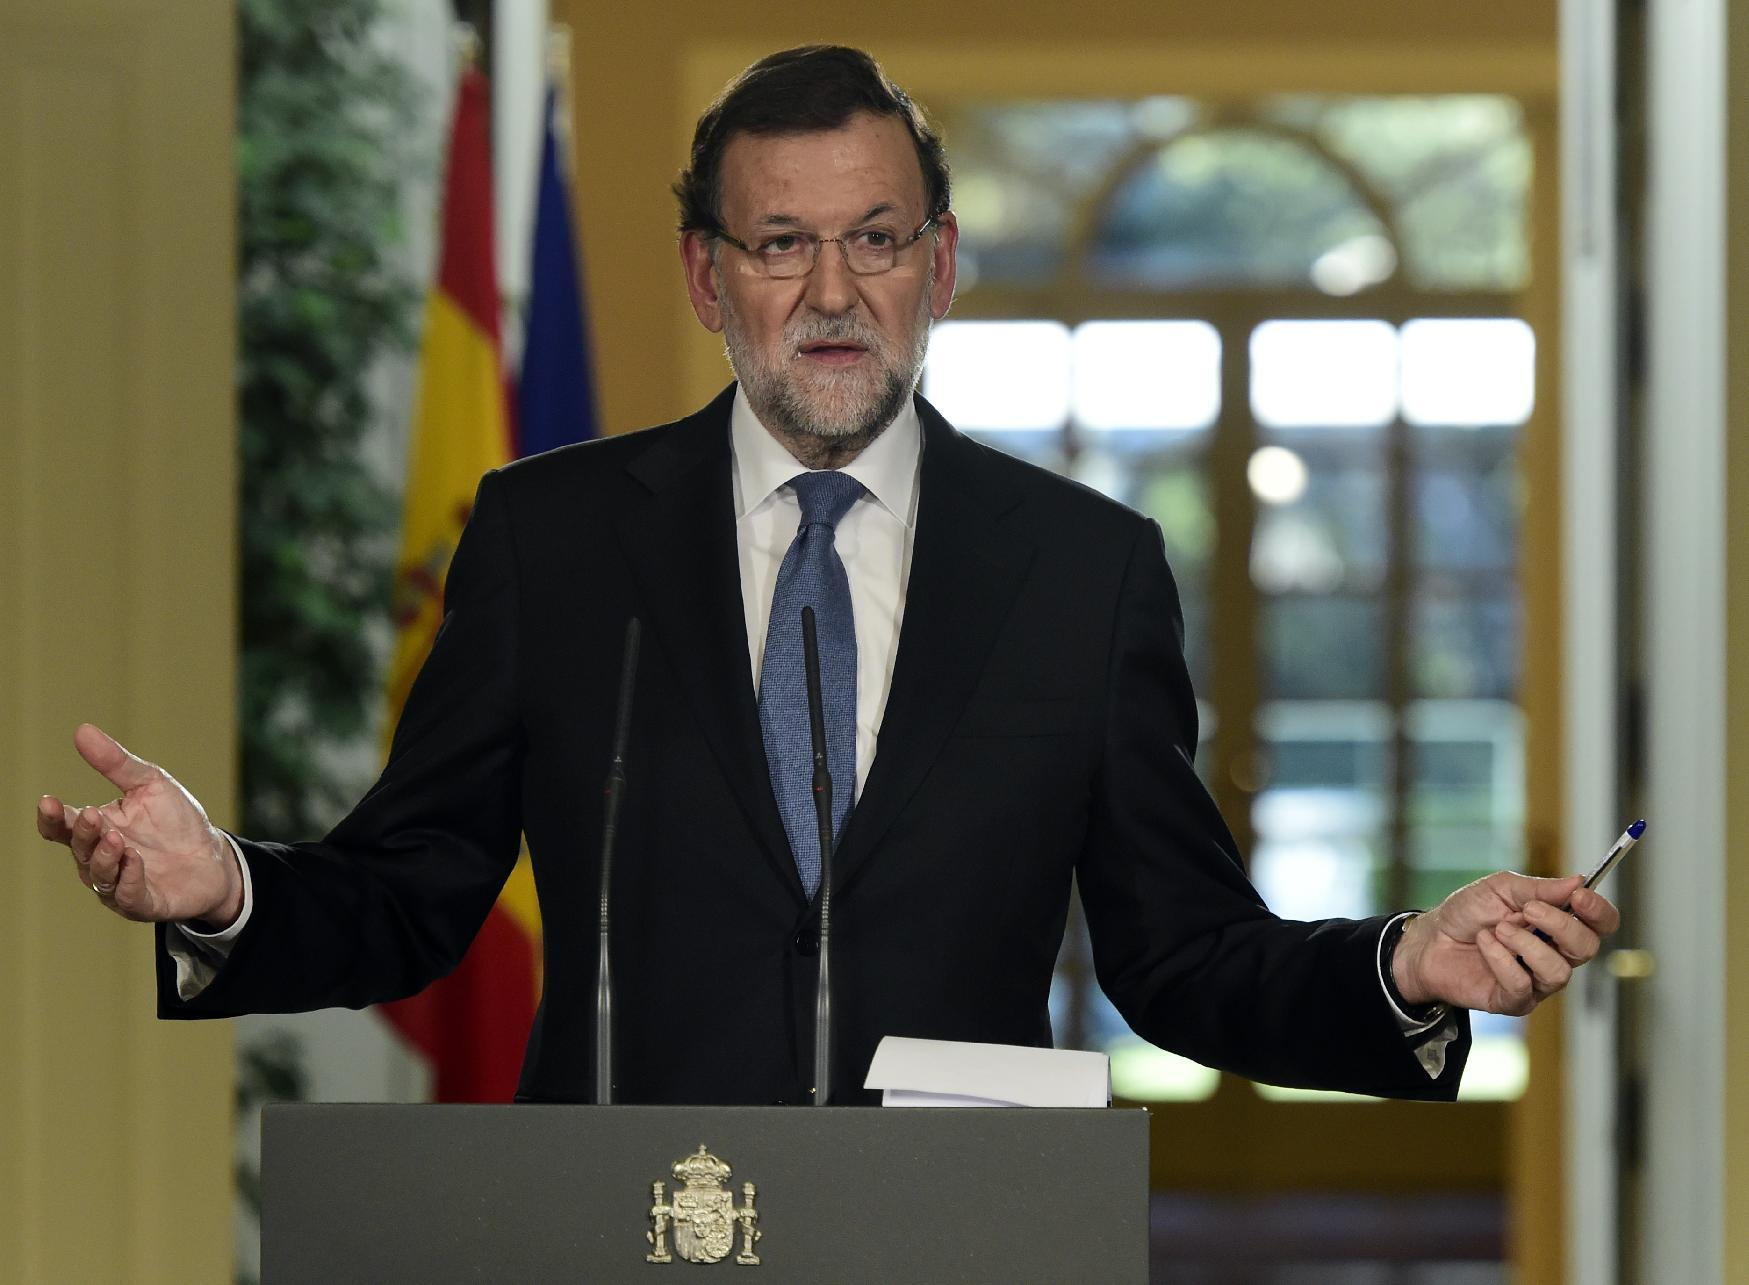 Spain PM promises economy will 'take off' in 2015